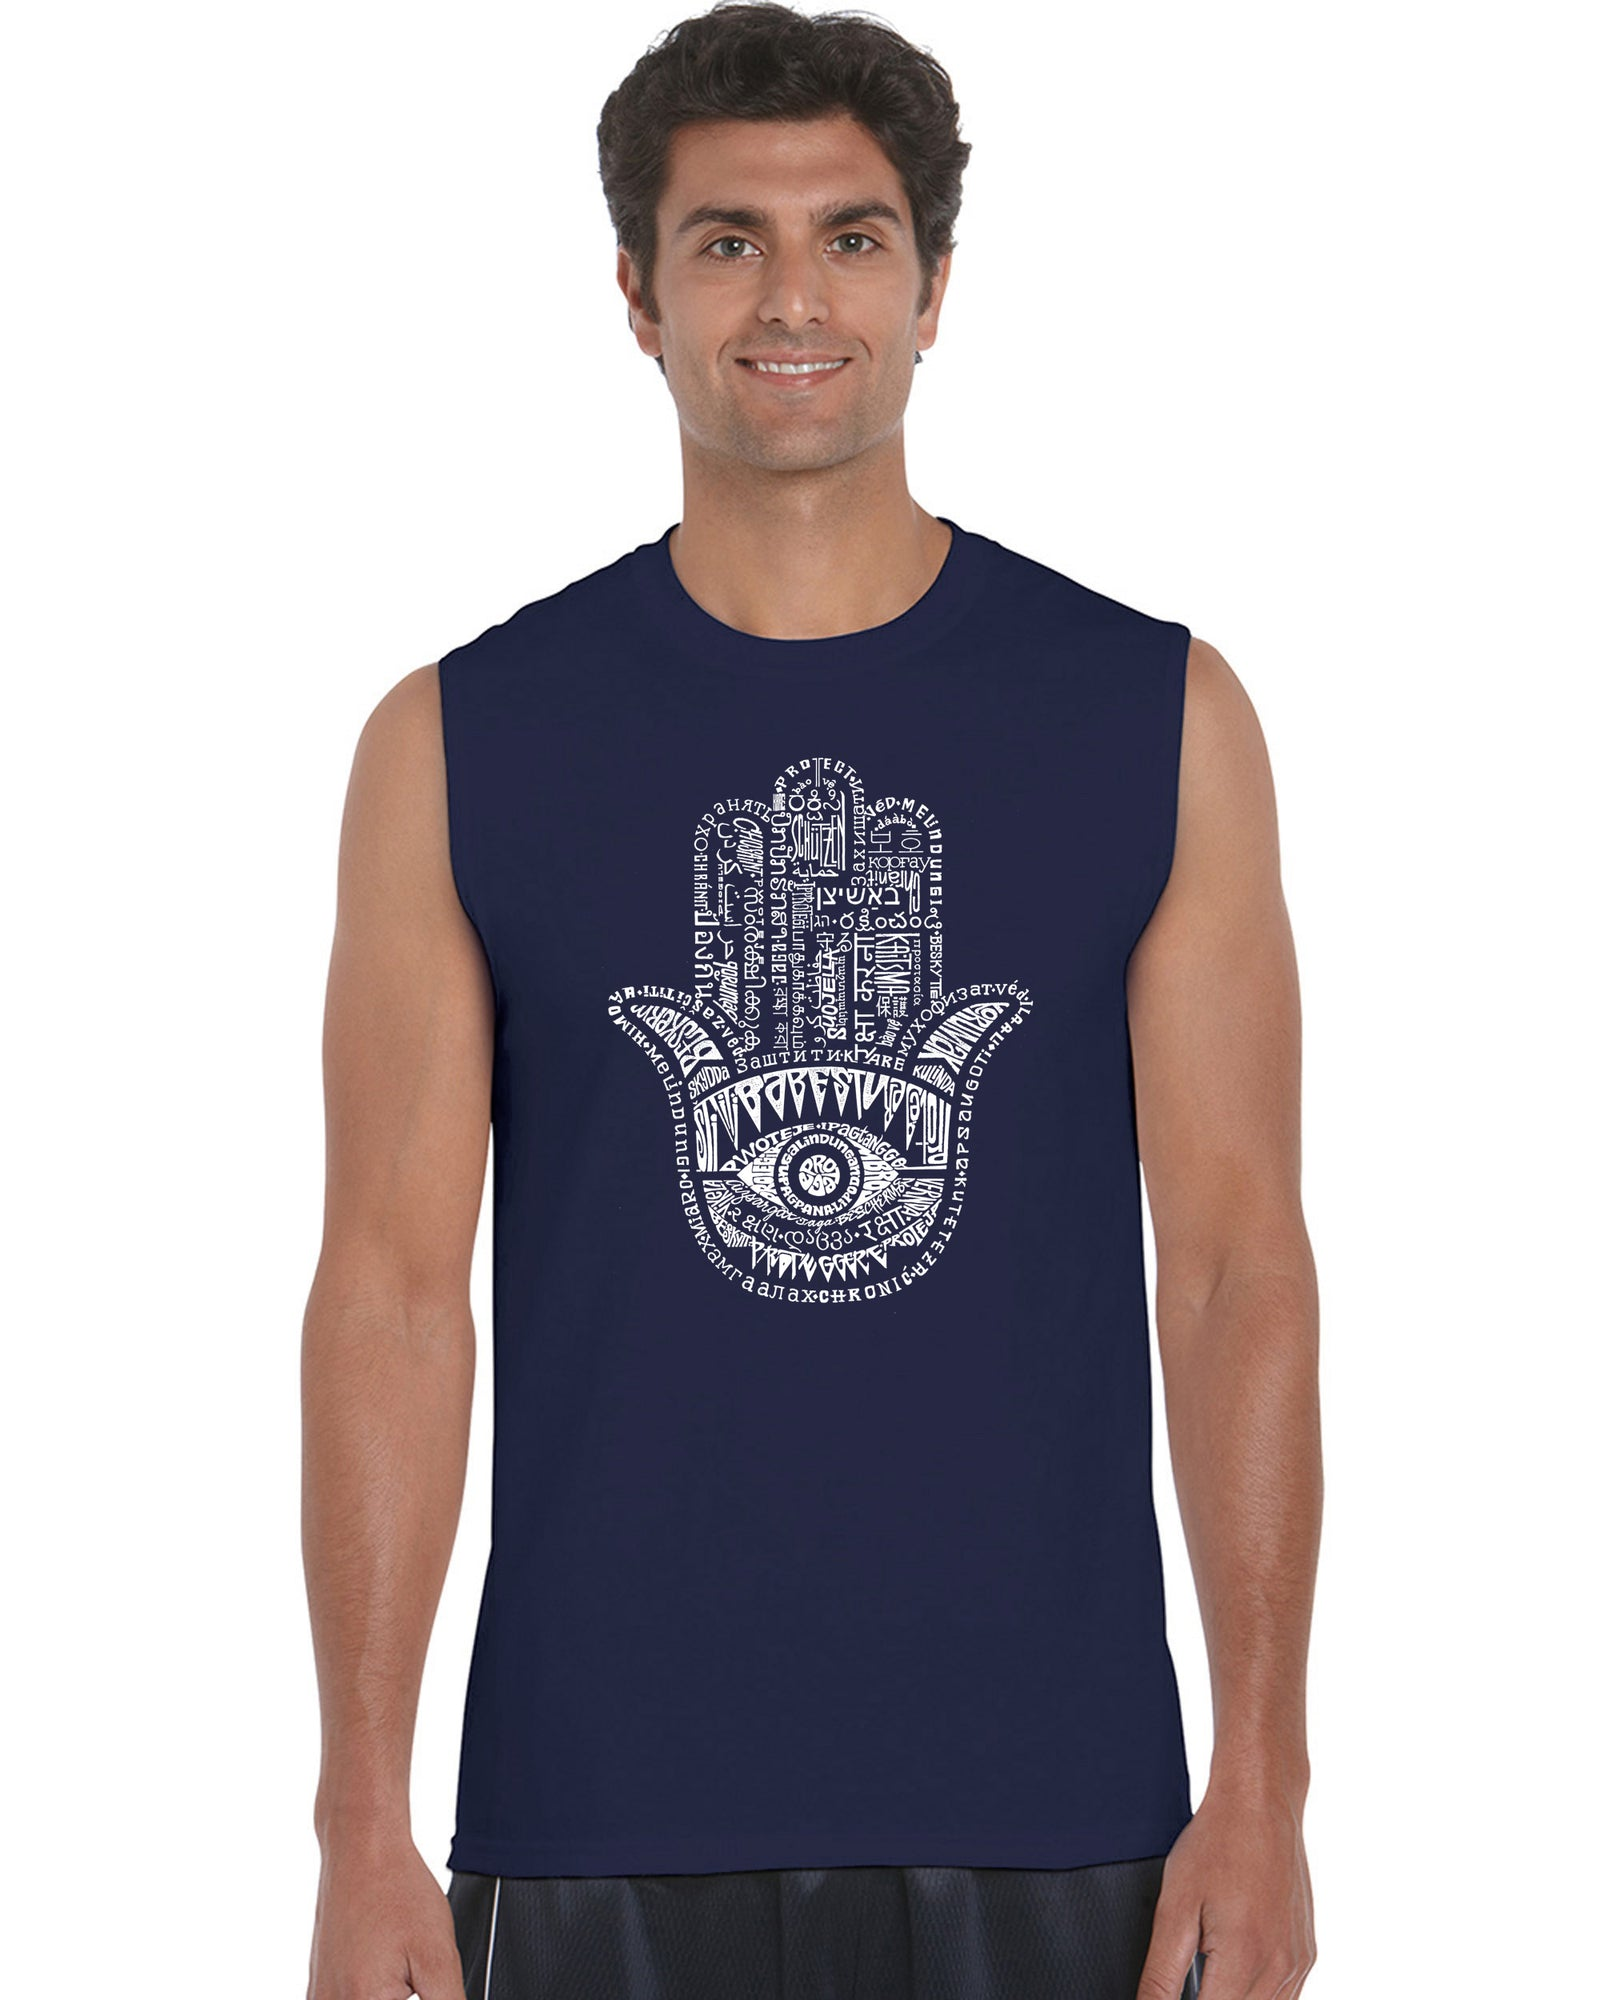 Men's Sleeveless T-shirt - Hamsa